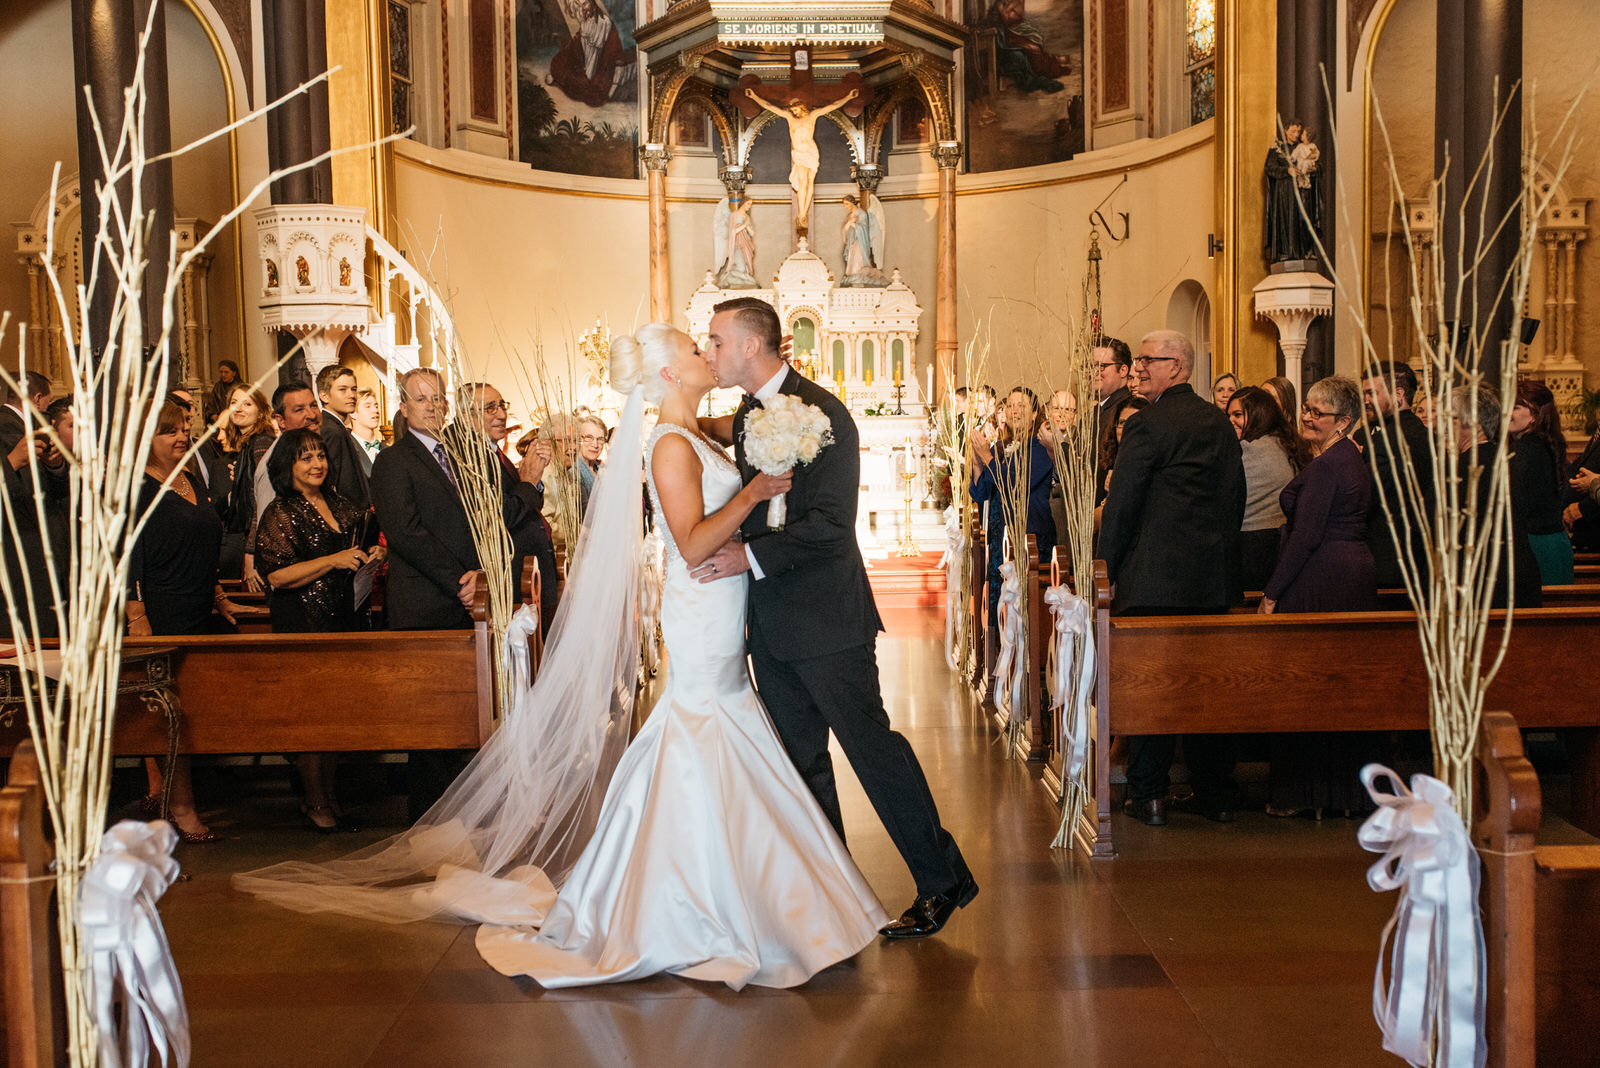 hilton_garden_inn_southpointe_pittsburgh_weddings_98.jpg